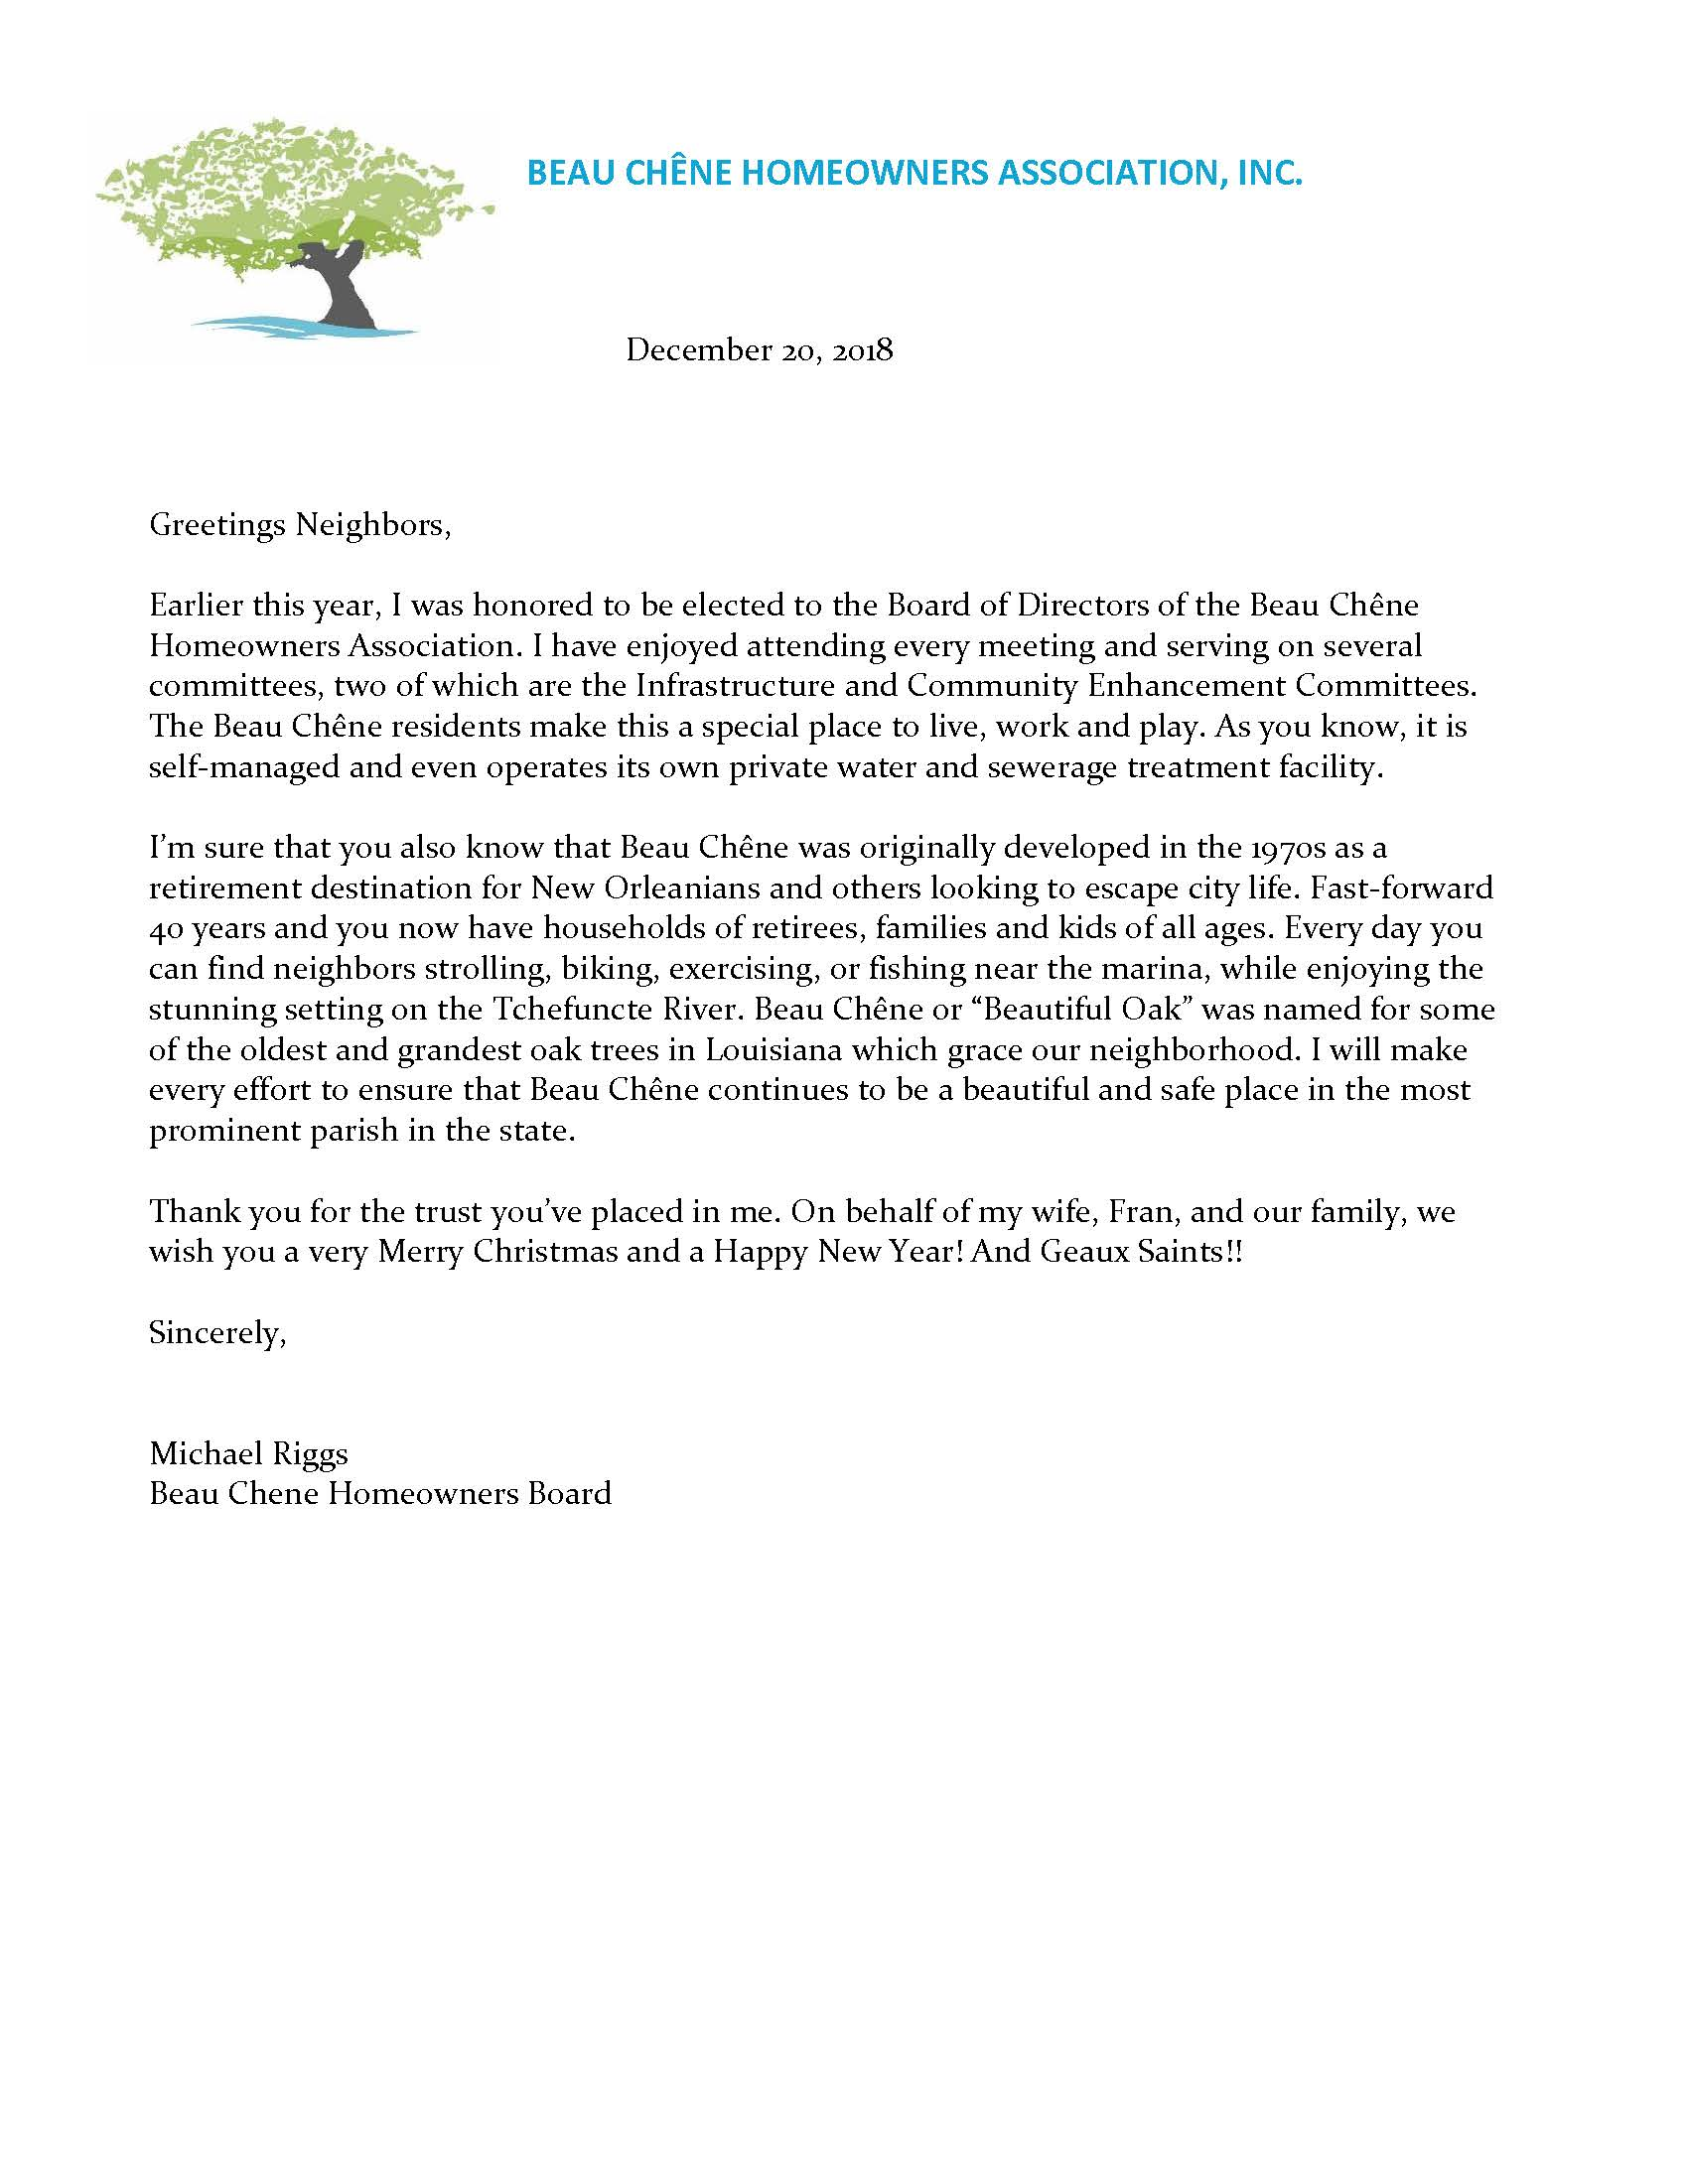 Michael Riggs Letter December 2018 - Beau Chêne Homeowners